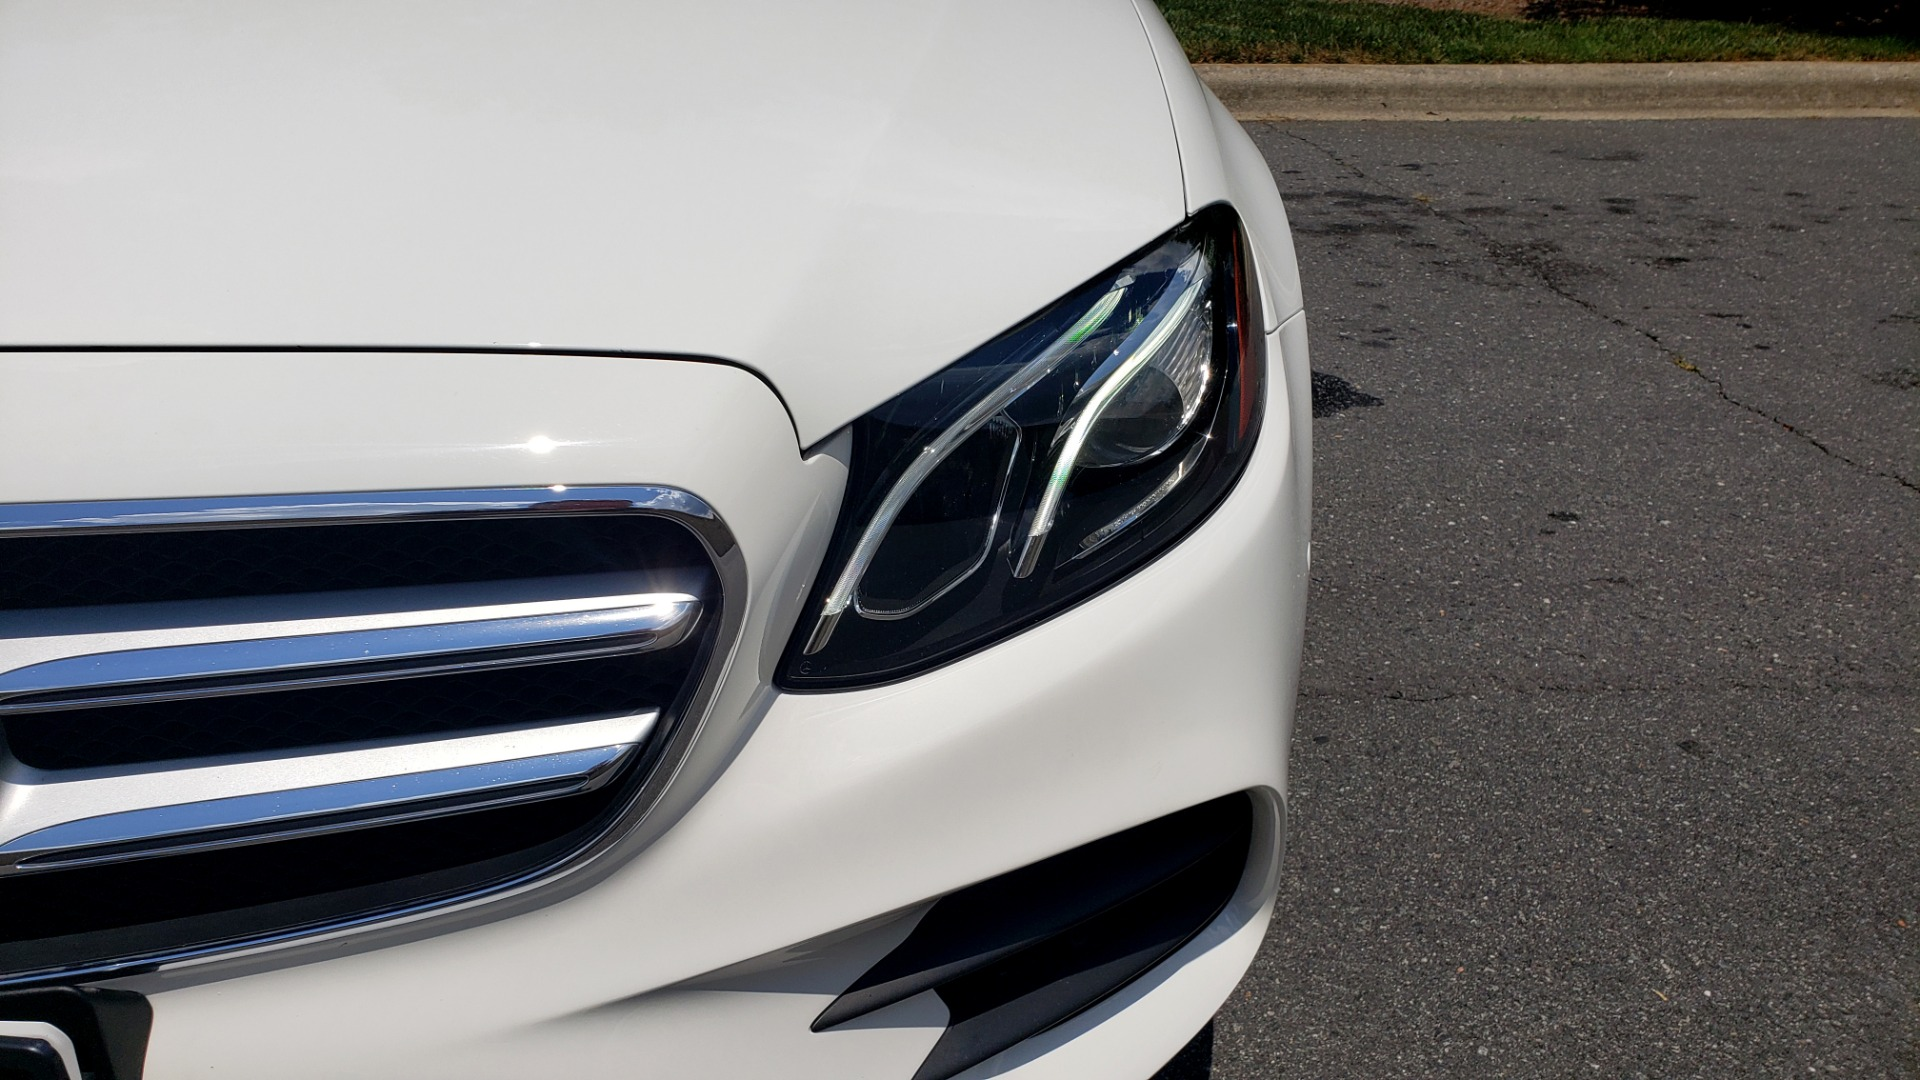 Used 2017 Mercedes-Benz E-CLASS E 300 PREMIUM / SPORT / NAV / SUNROOF / HTD STS / BSM / REARVIEW for sale $27,995 at Formula Imports in Charlotte NC 28227 20